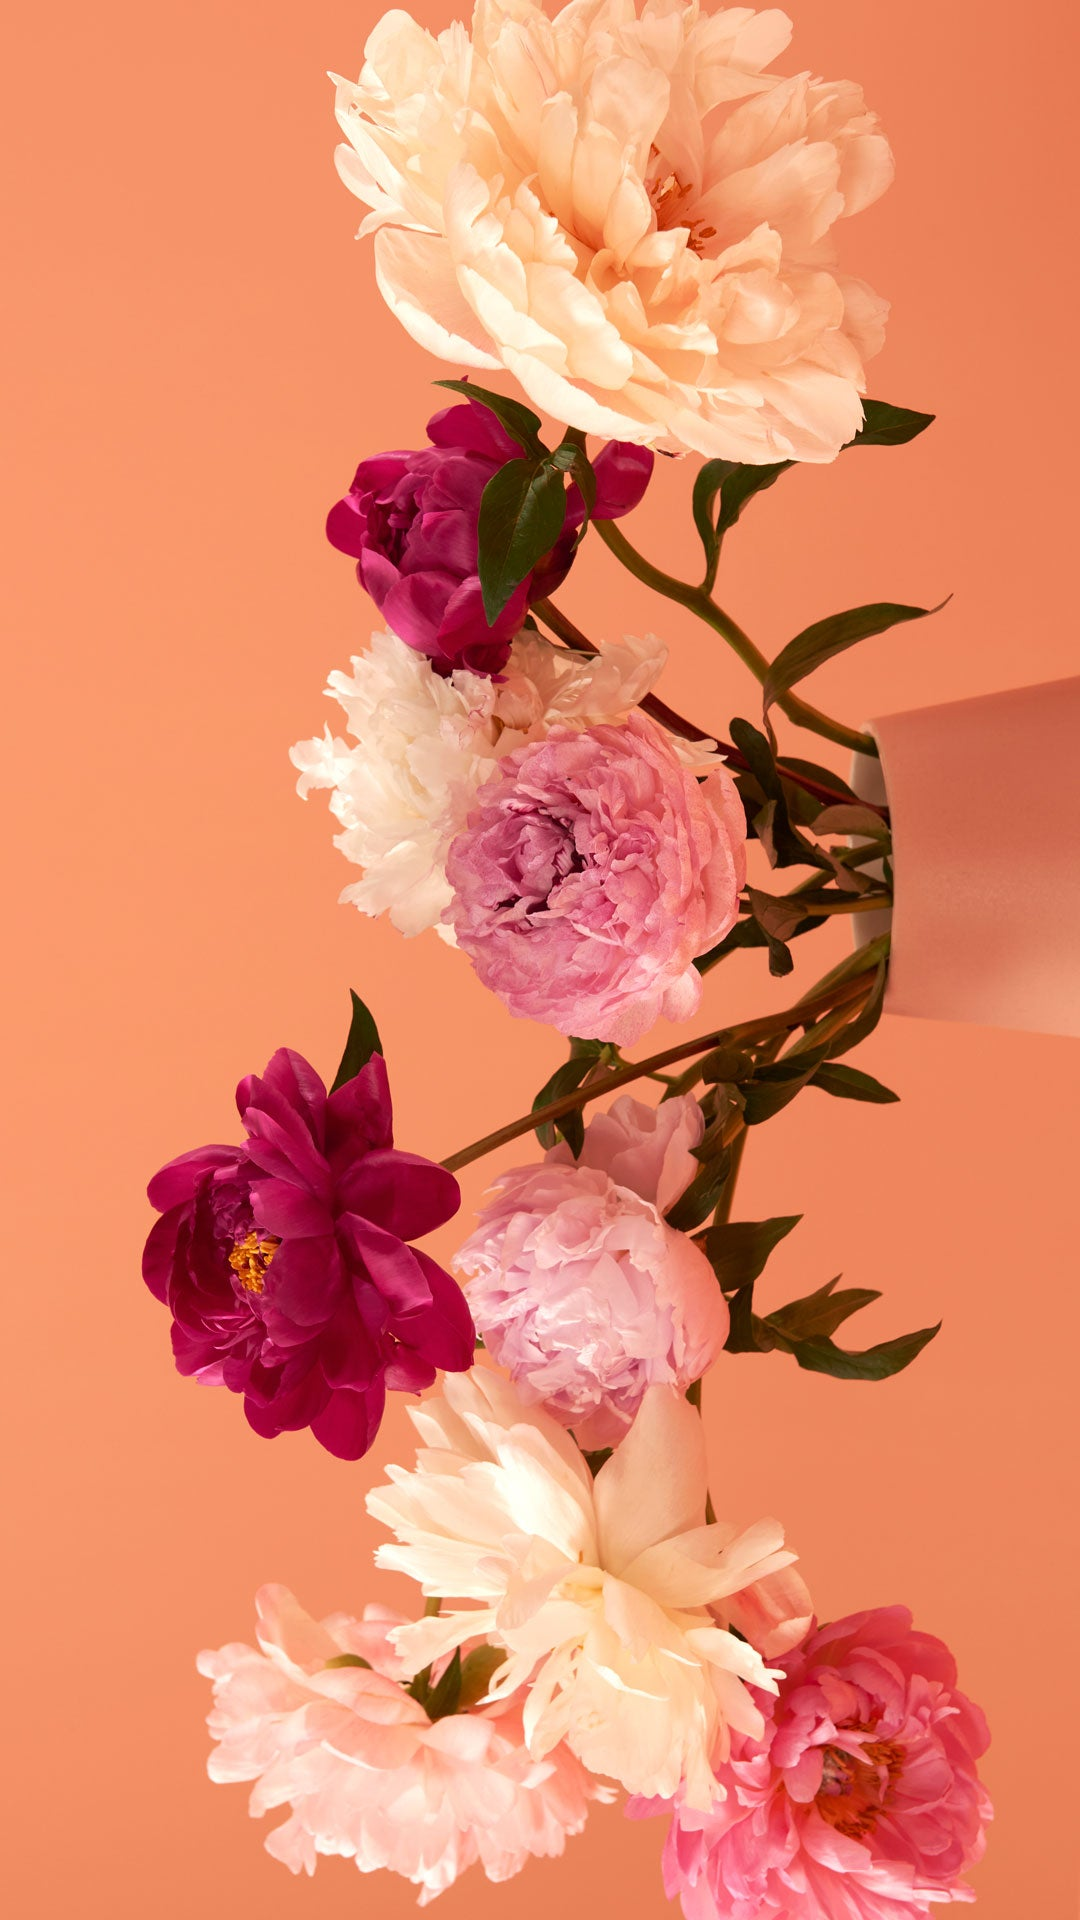 Wallpaper with peonies